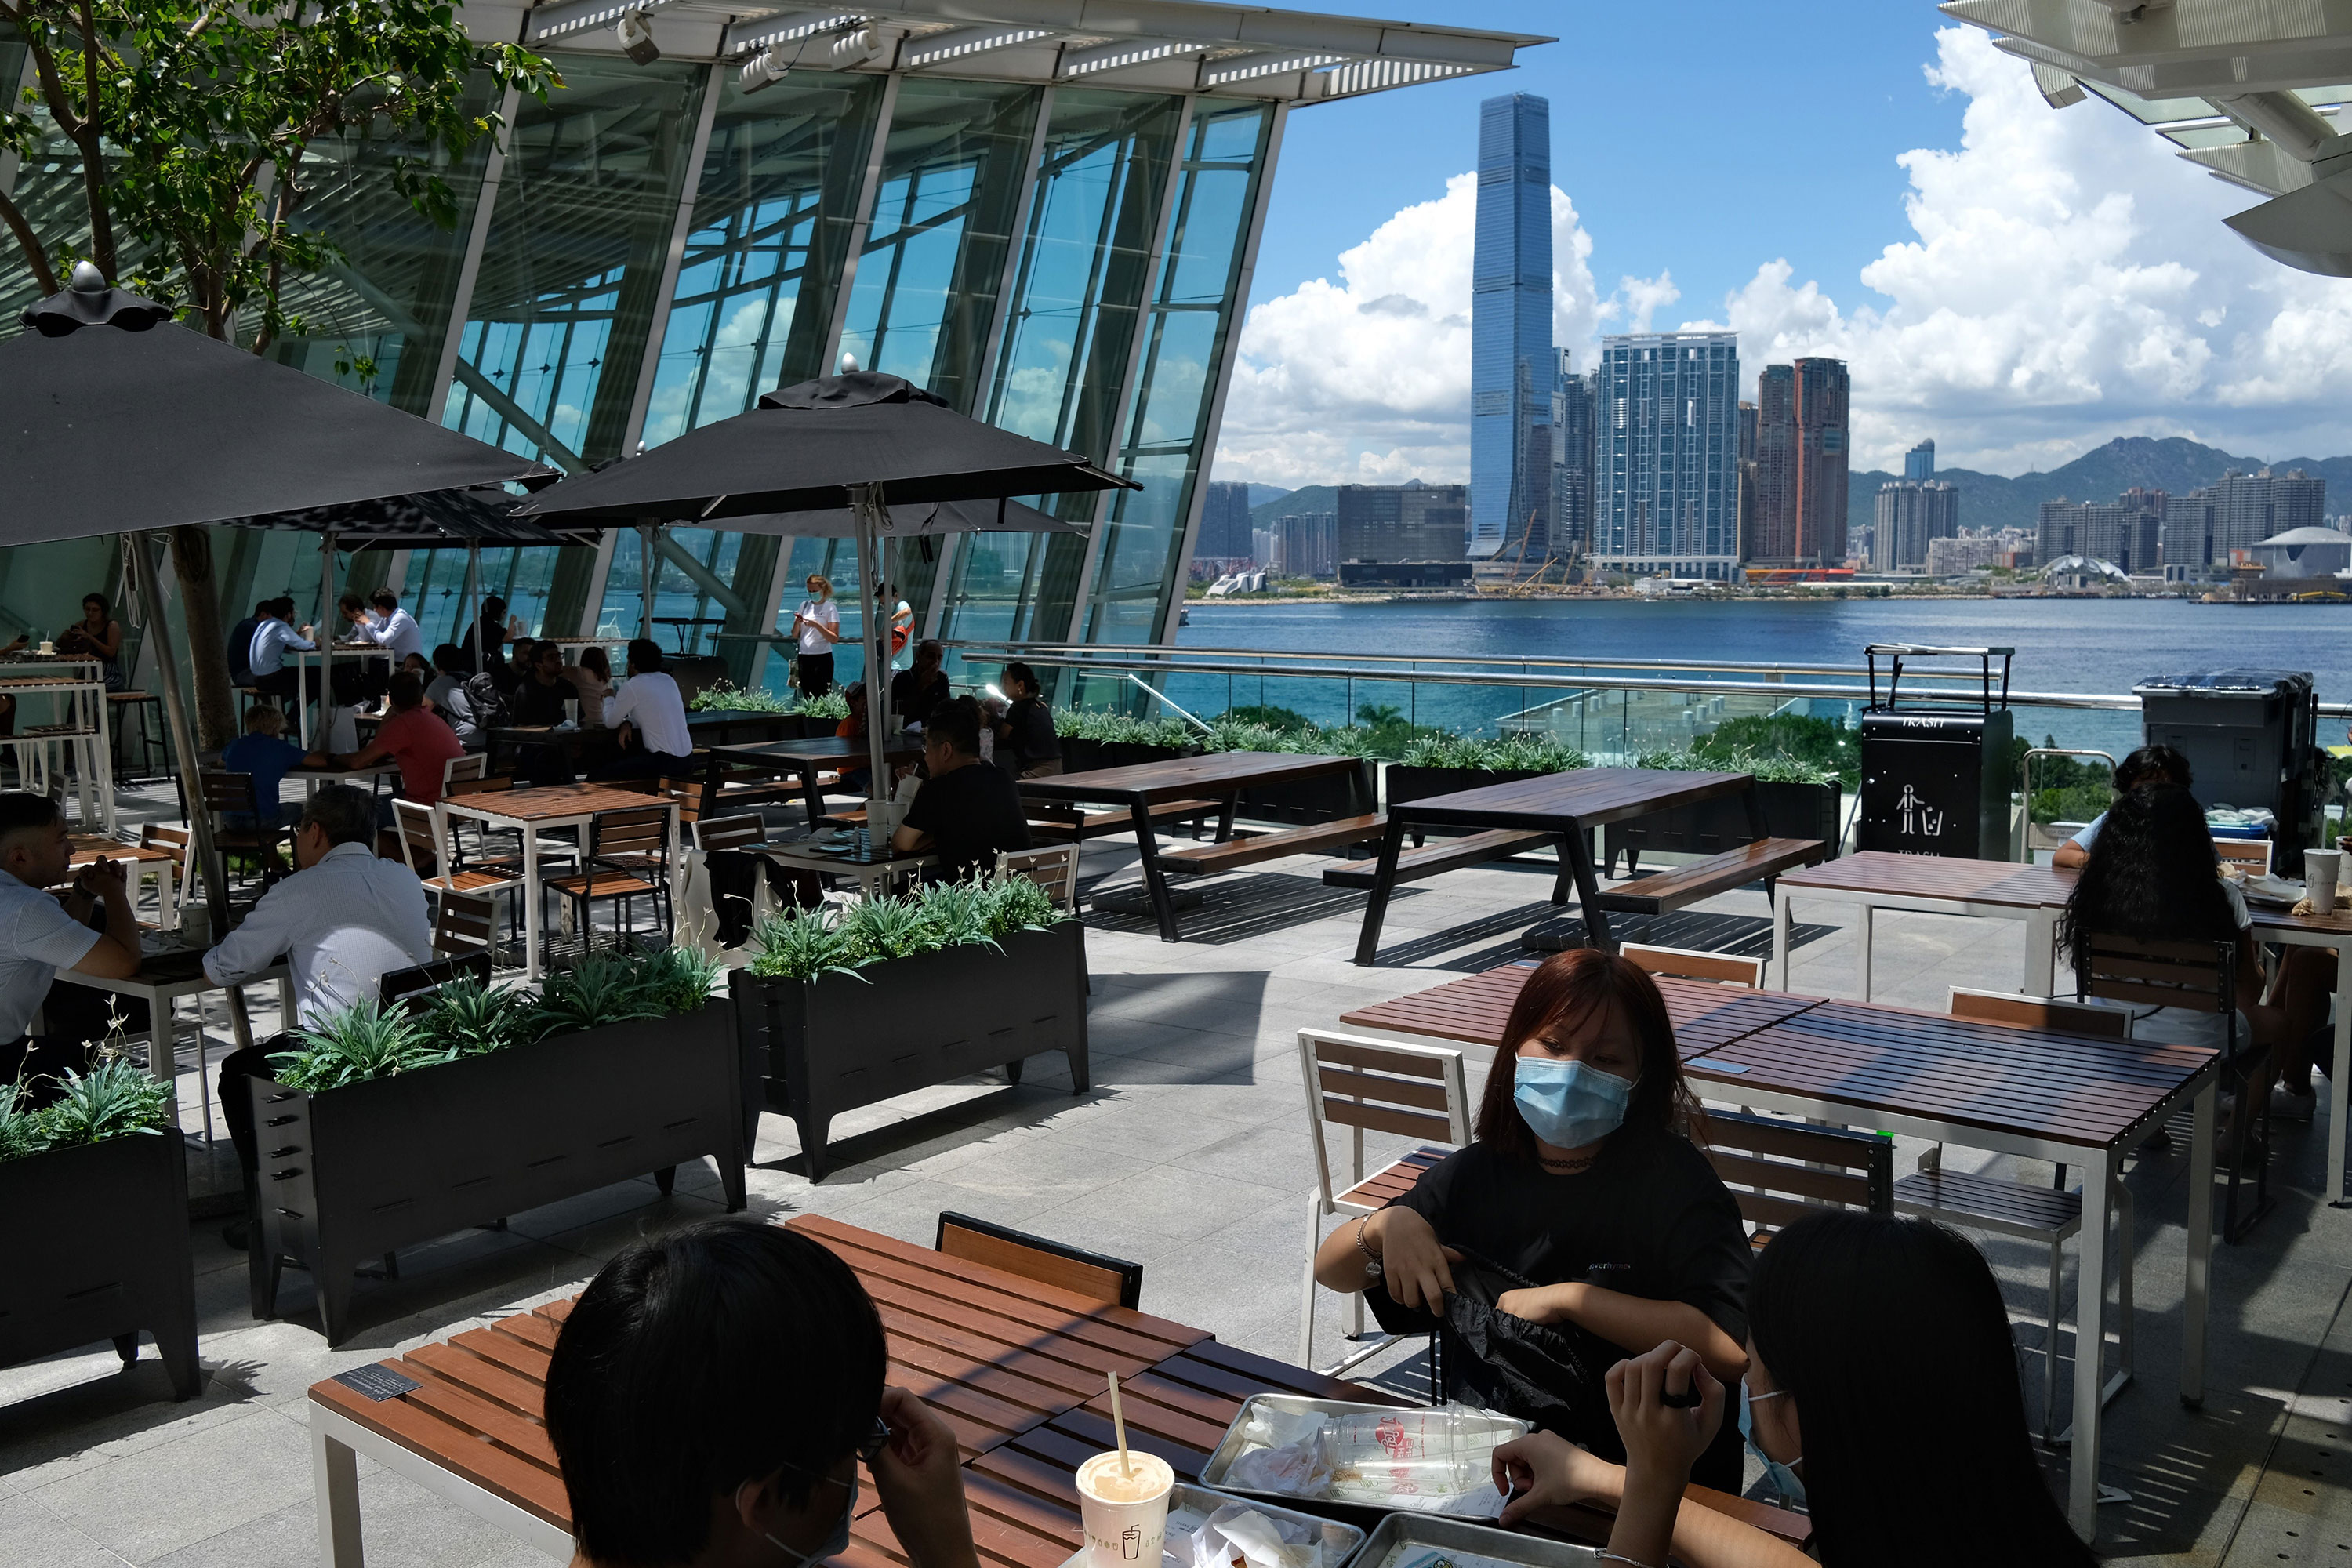 Customers have lunch at an outdoor dining area of a shopping mall on July 28 in Hong Kong.